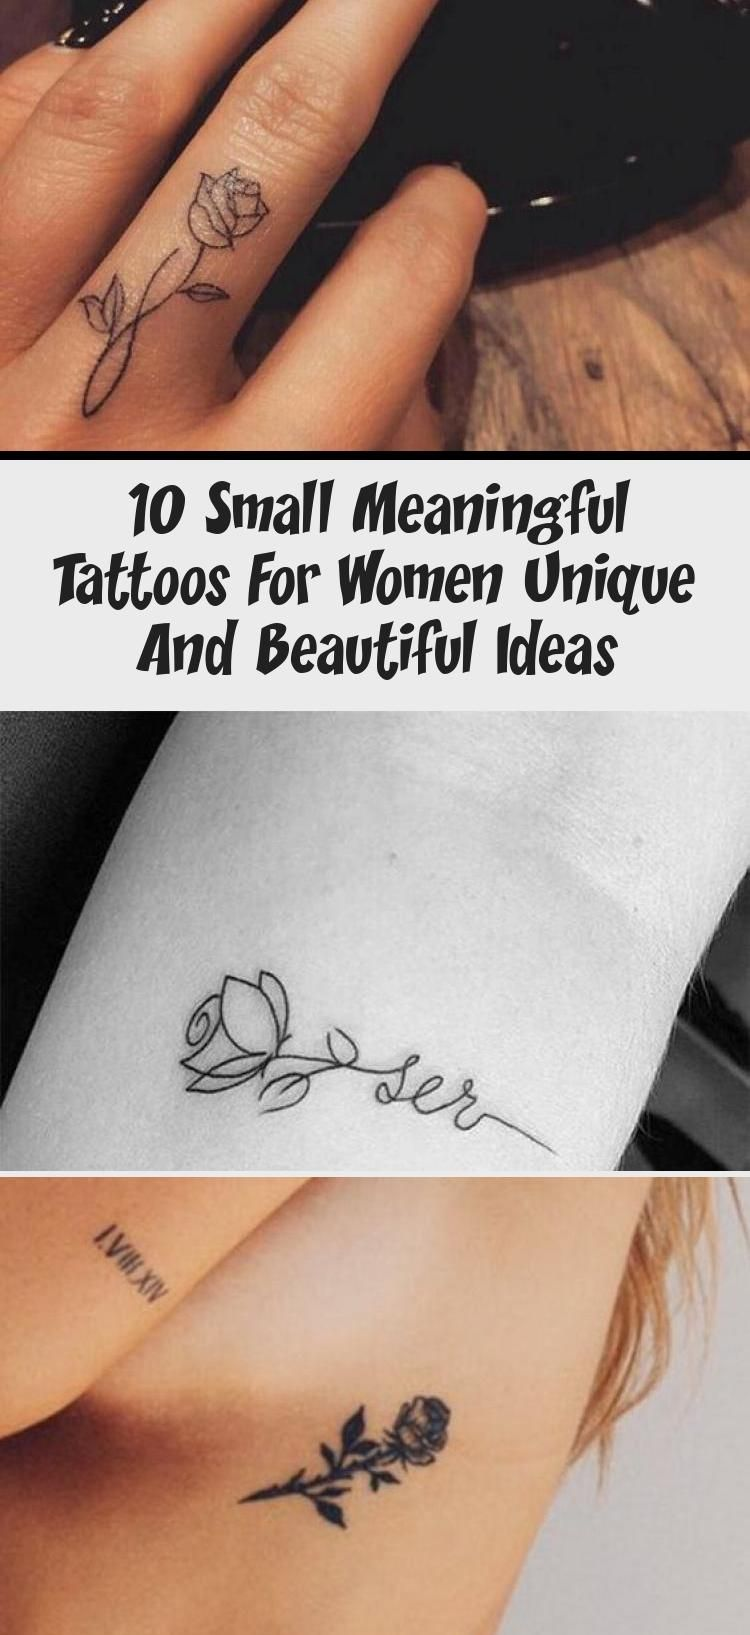 Photo of 10 Small Meaningful Tattoos for Women Unique and Beautiful Ideas – Lifestyle Spu…